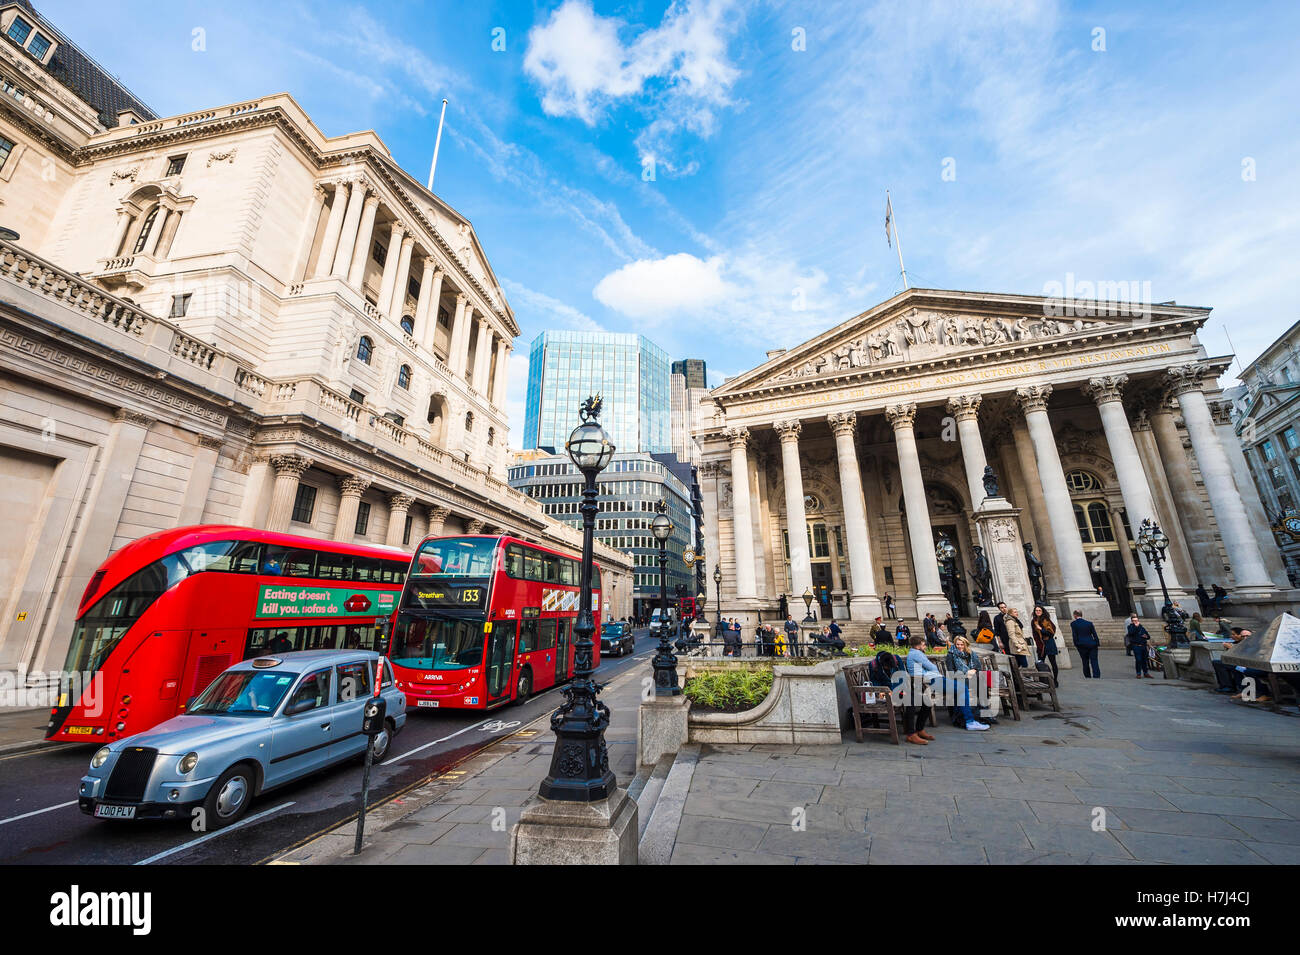 LONDON - NOVEMBER 3, 2016: Modern red double-decker bus passes in front of the Bank of England and Royal Exchange - Stock Image